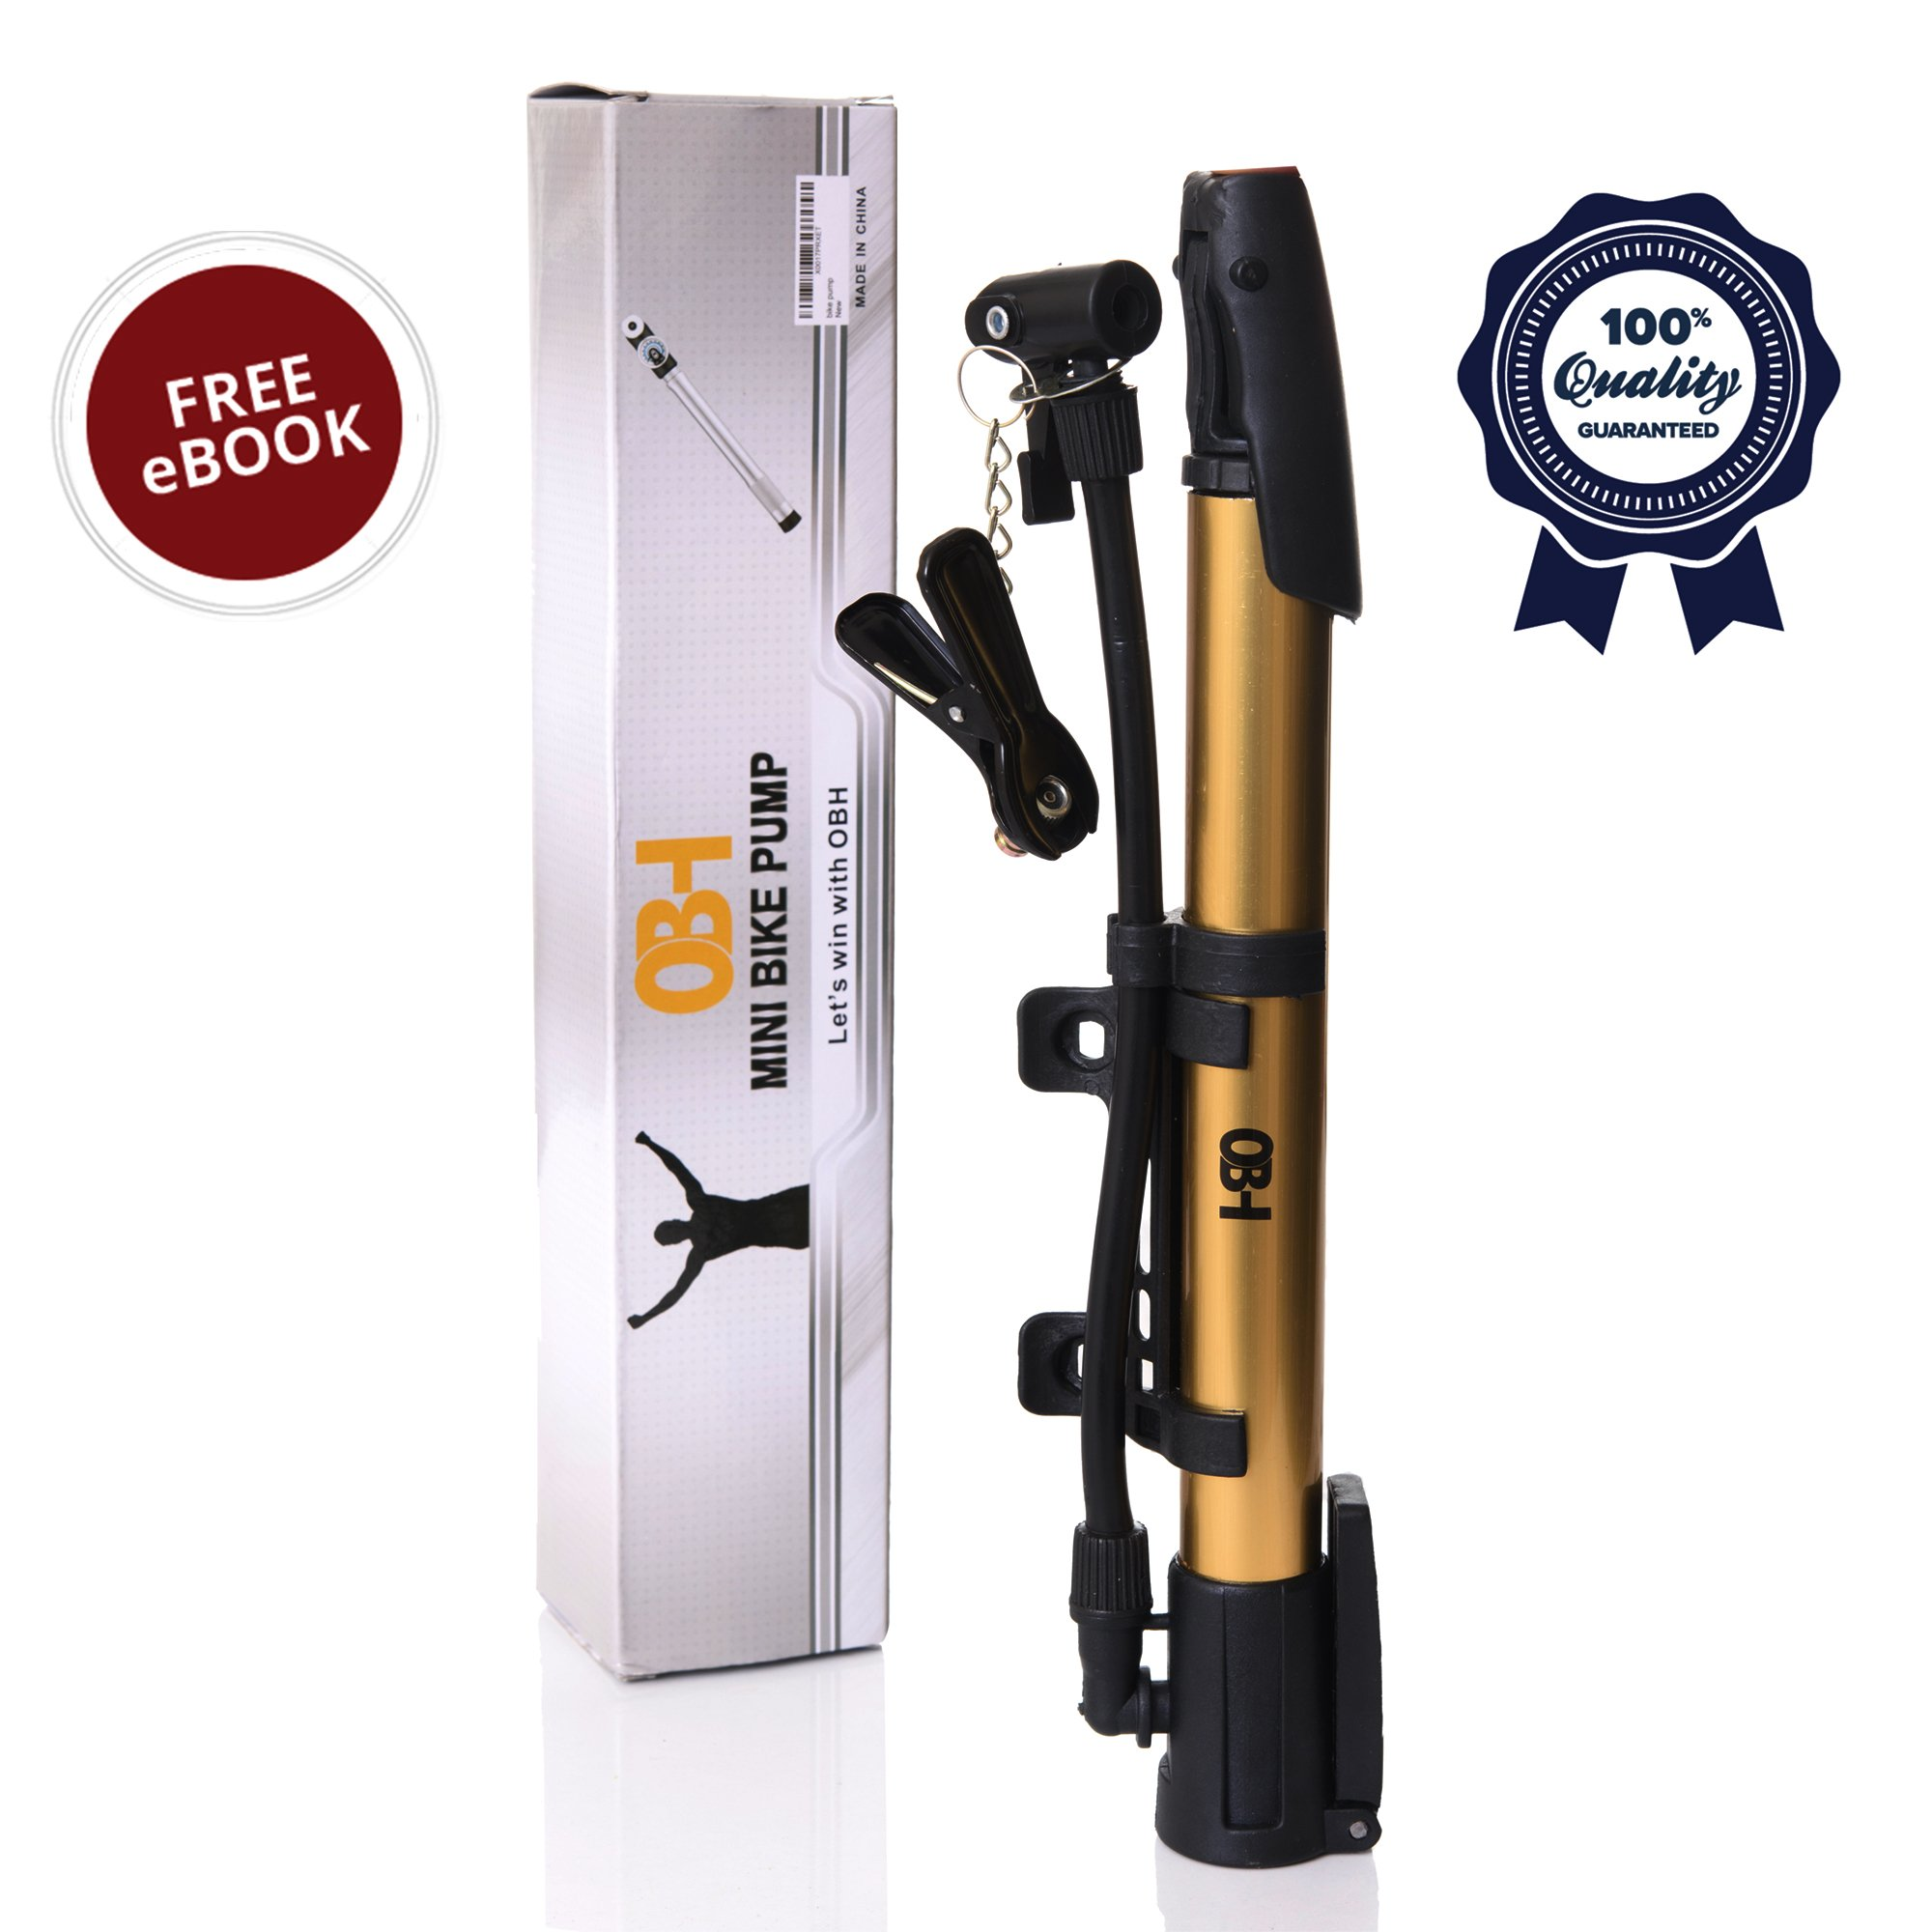 OBH Mini Bike Pump – 120 PSI High Pressure Portable Bike Tire Pump– Lightweight & easy to use - Compatible with Dunlop & Schrader Valves – with eBook